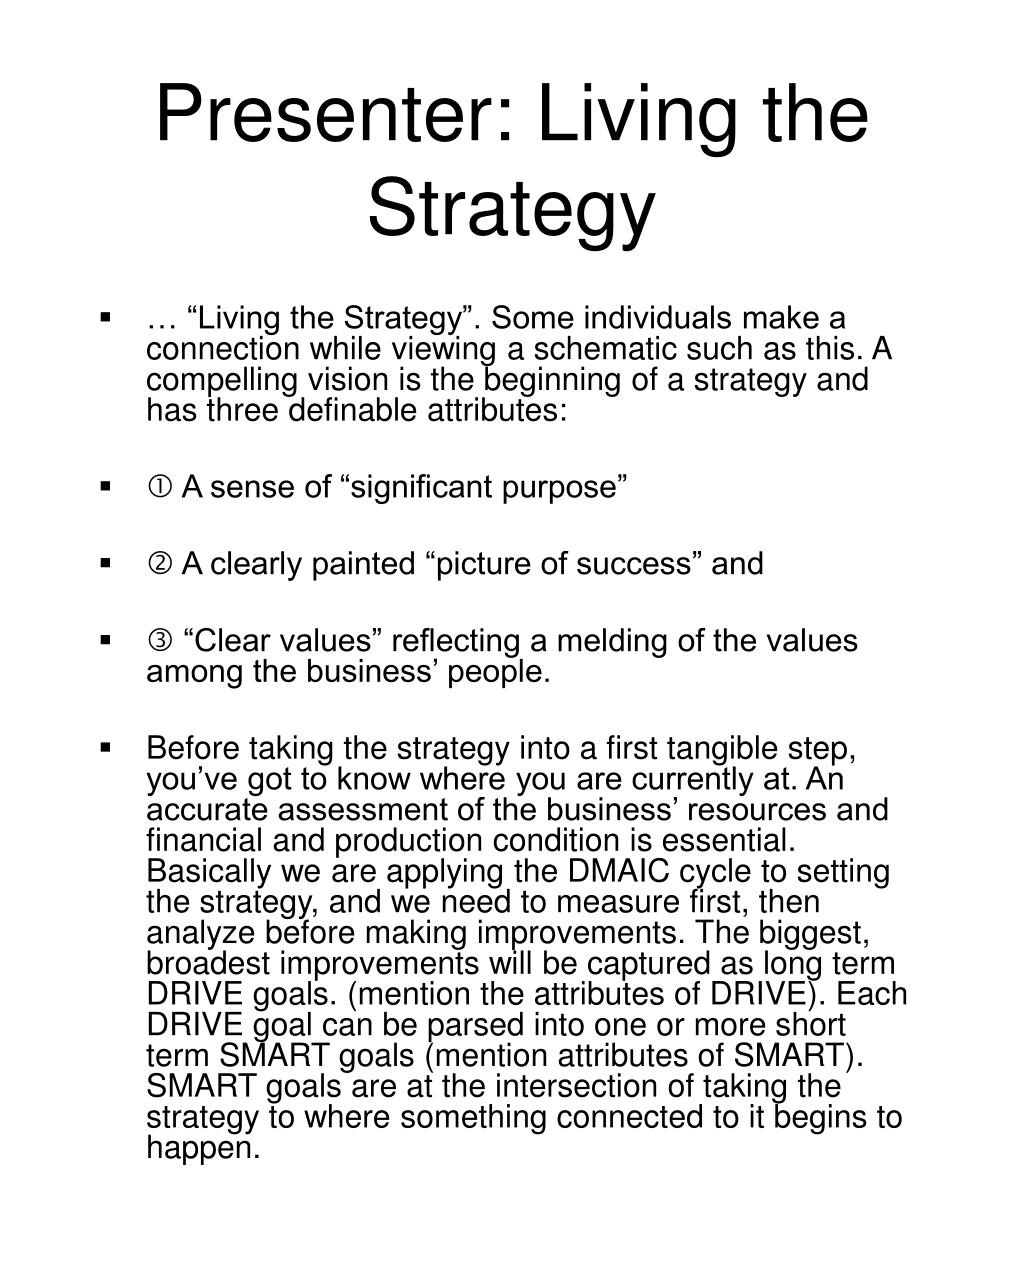 Presenter: Living the Strategy